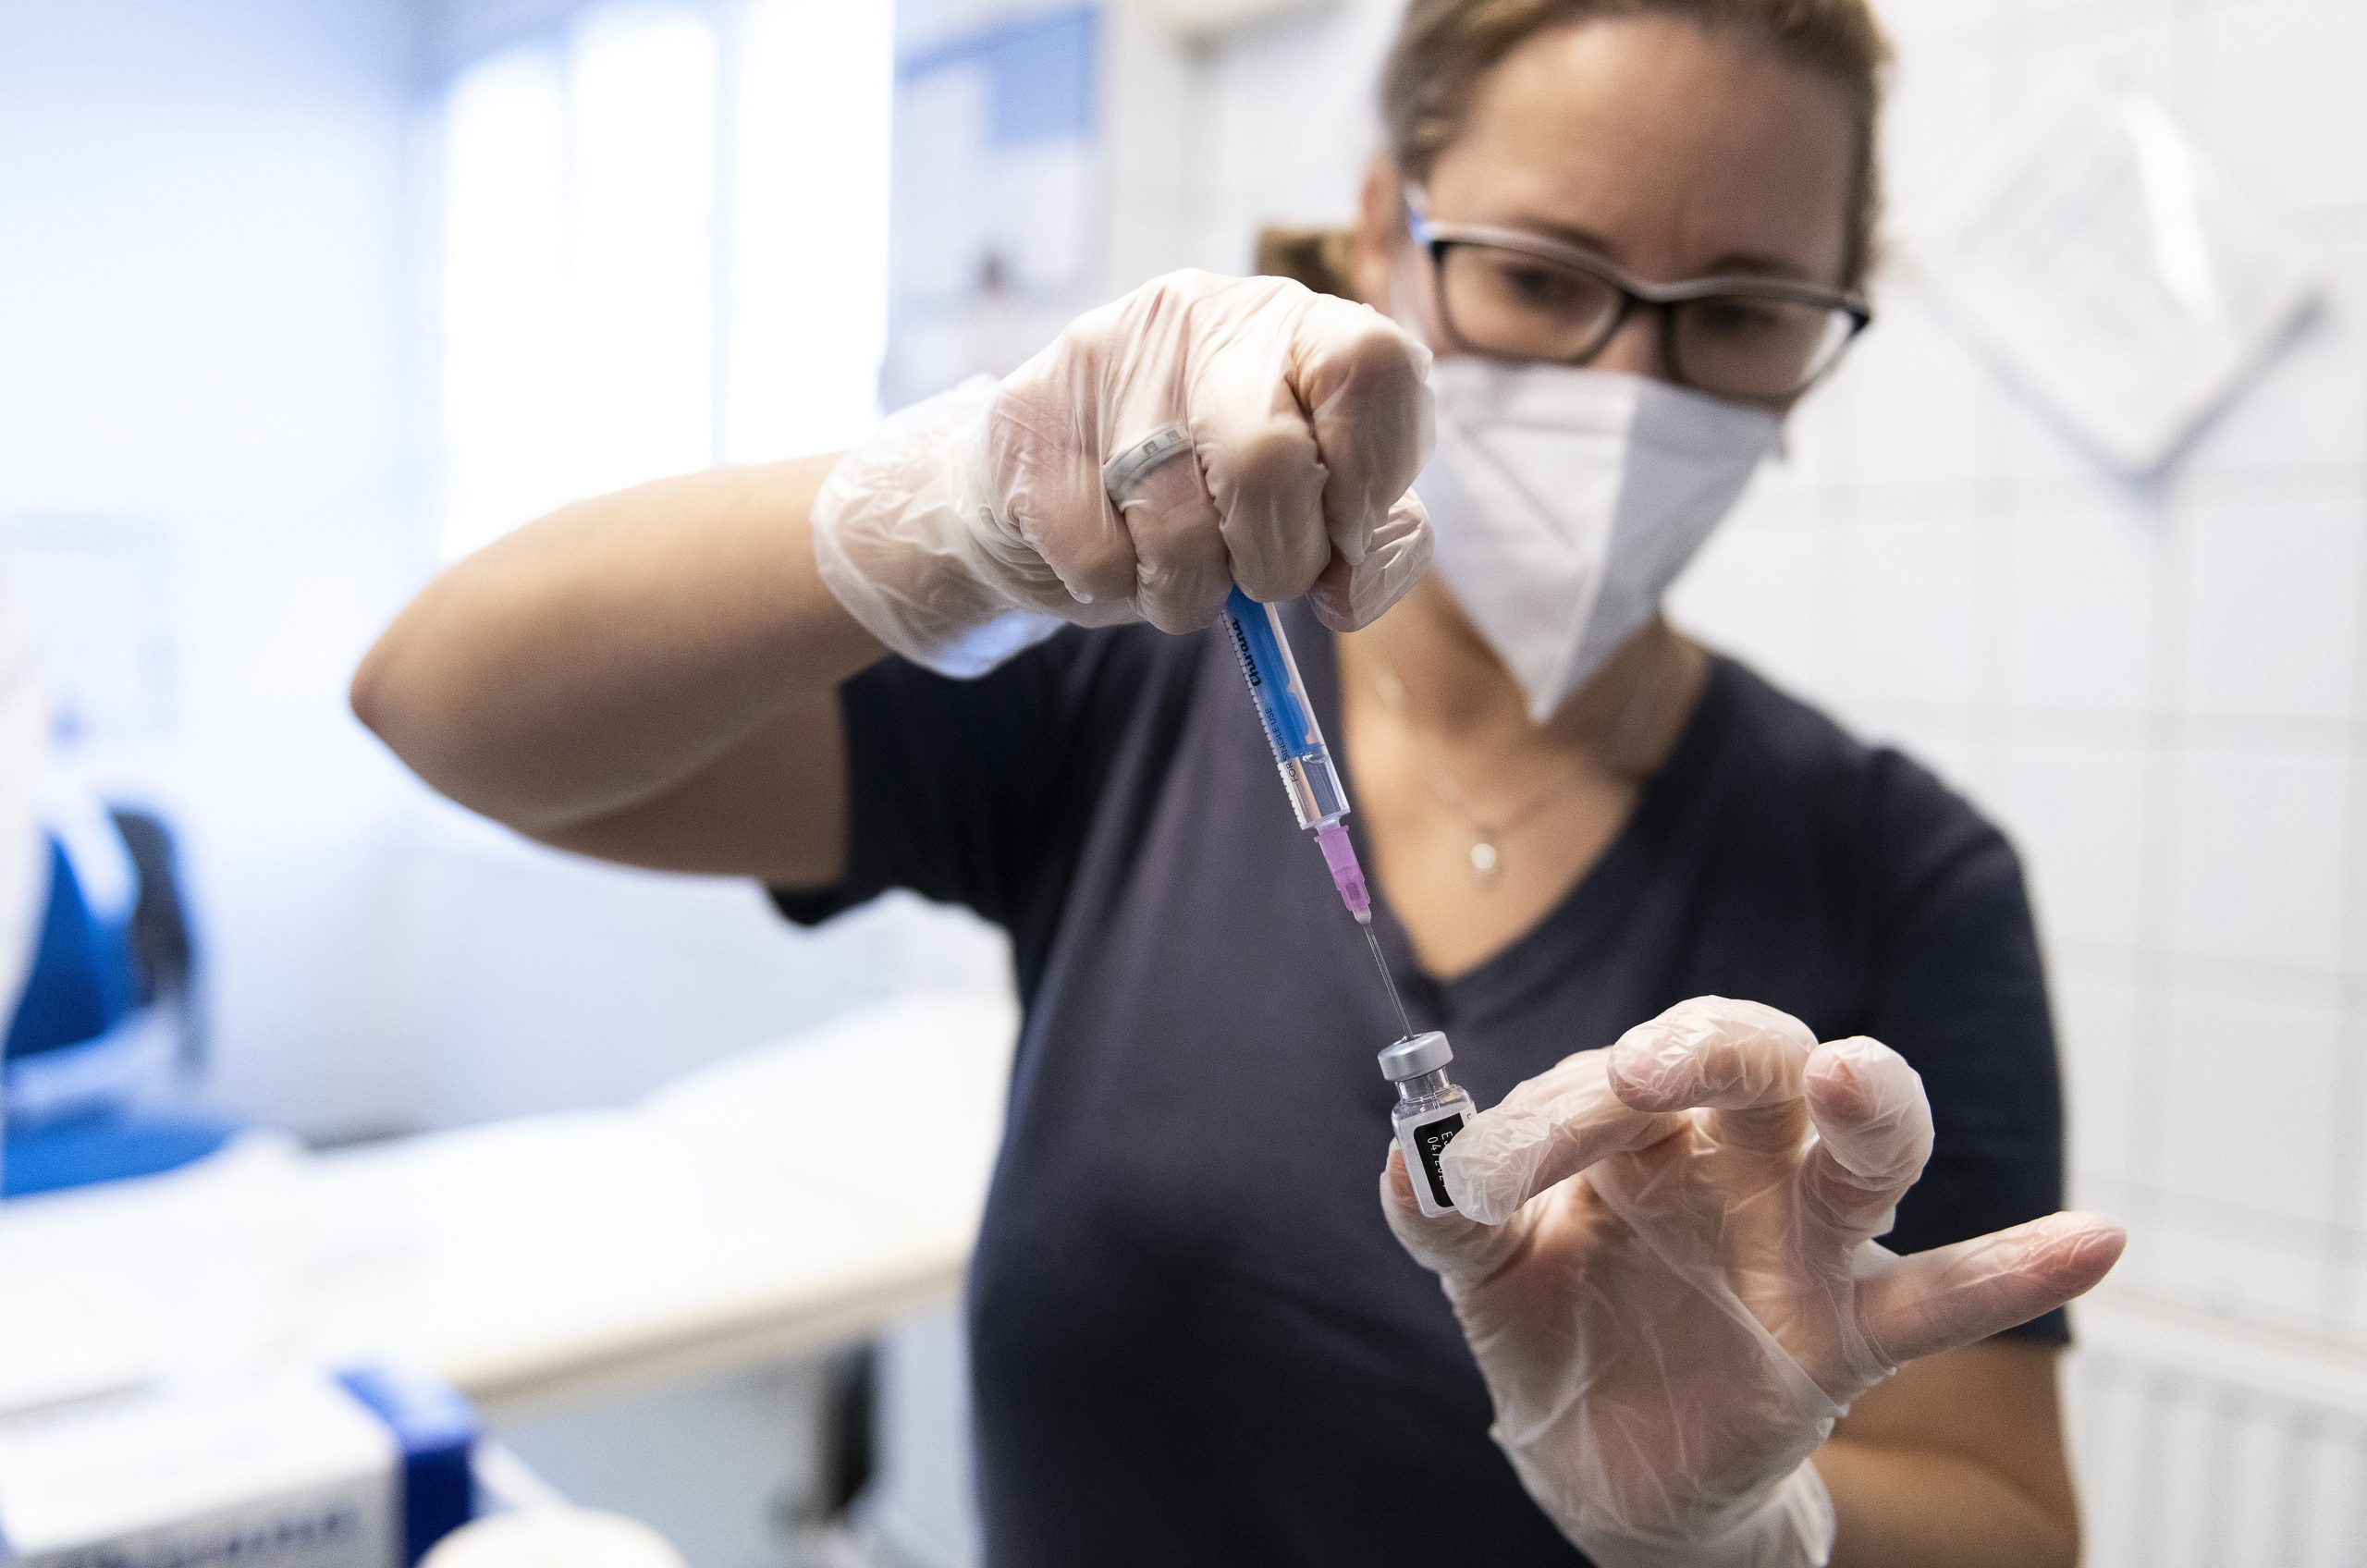 Coronavirus: Hungary Begins Vaccinating Health-Care Workers